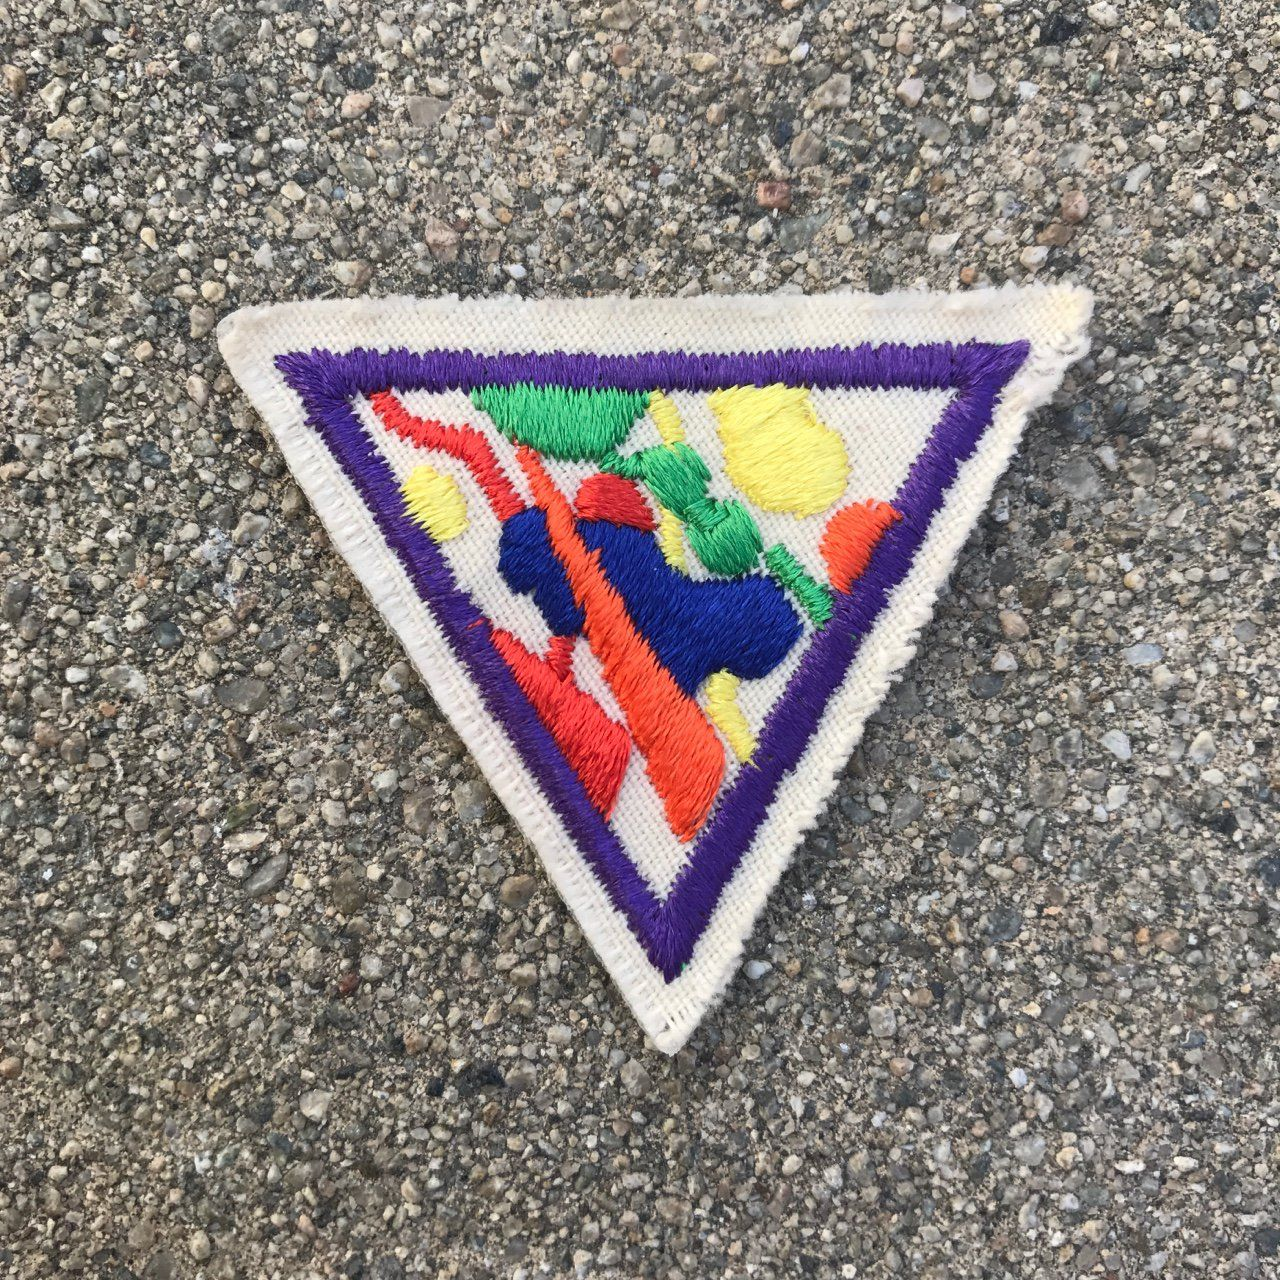 ☁️ | wild n colorful lil patch 🌈  | 1.5 x 1.5 | purple red orange yellow green on cream background | vintage 90s | put it on your favorite purse or jean jacket and add to your collection ✨all prices include shipping 📦 | #depop #depopfamous #patch